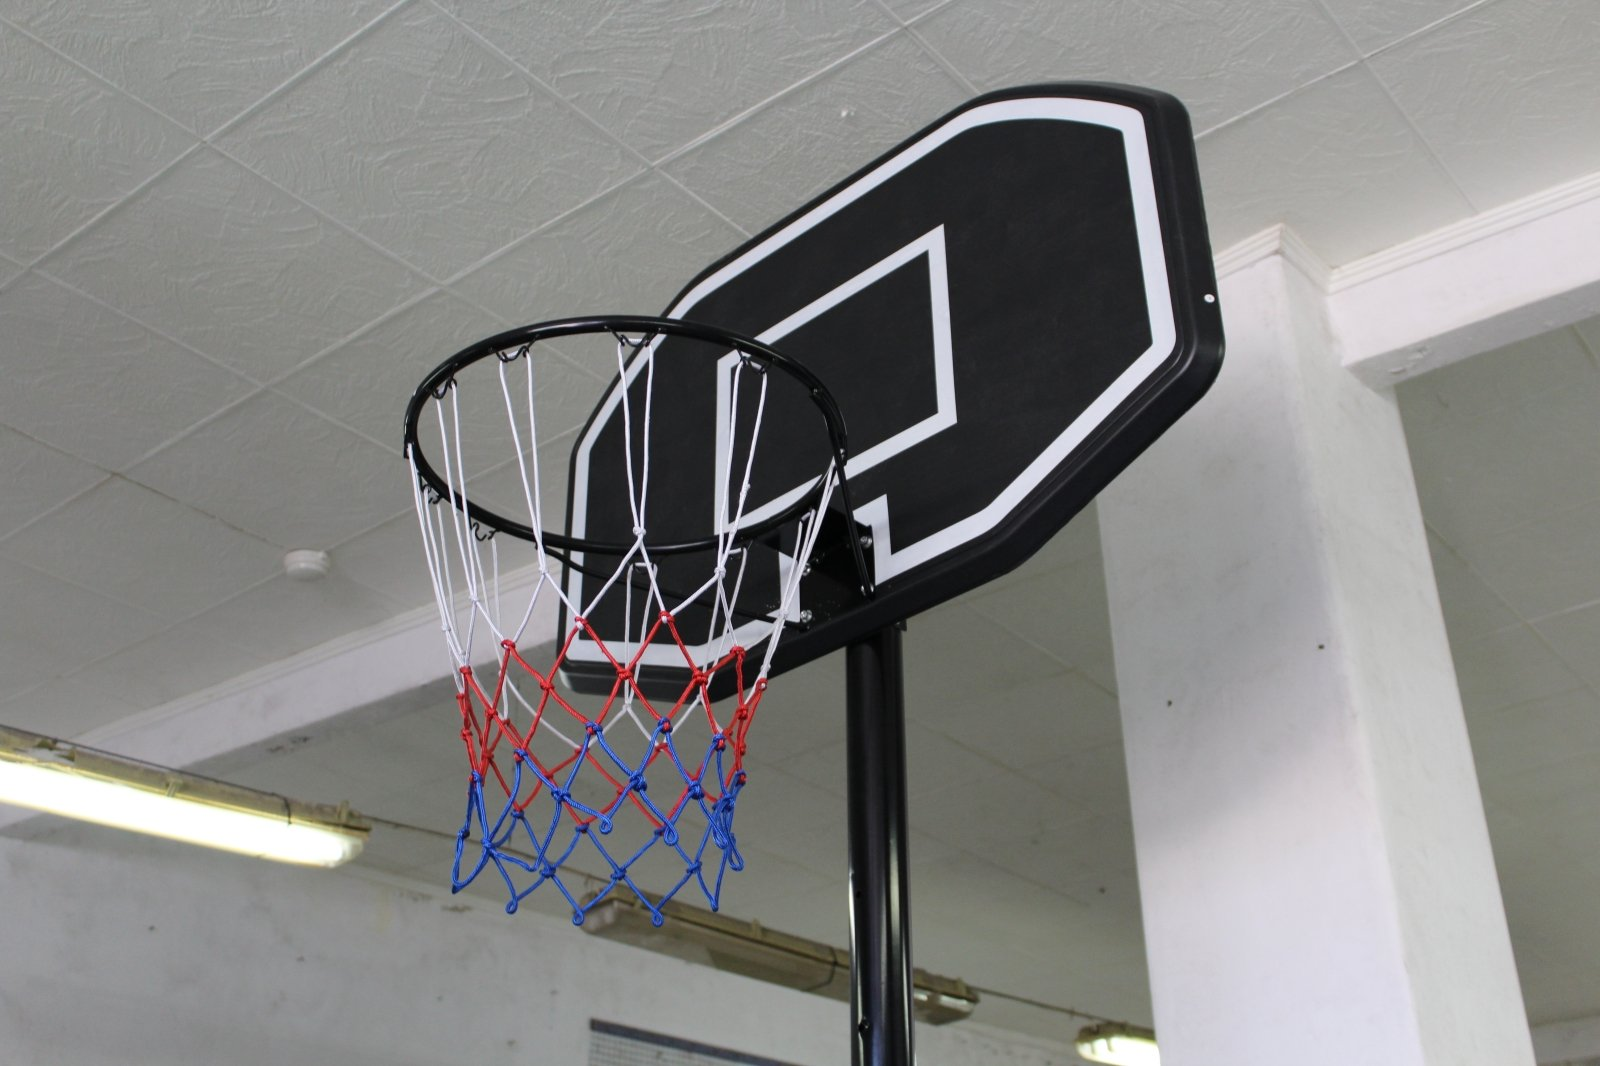 A basketball hoop with a net  Description automatically generated with low confidence